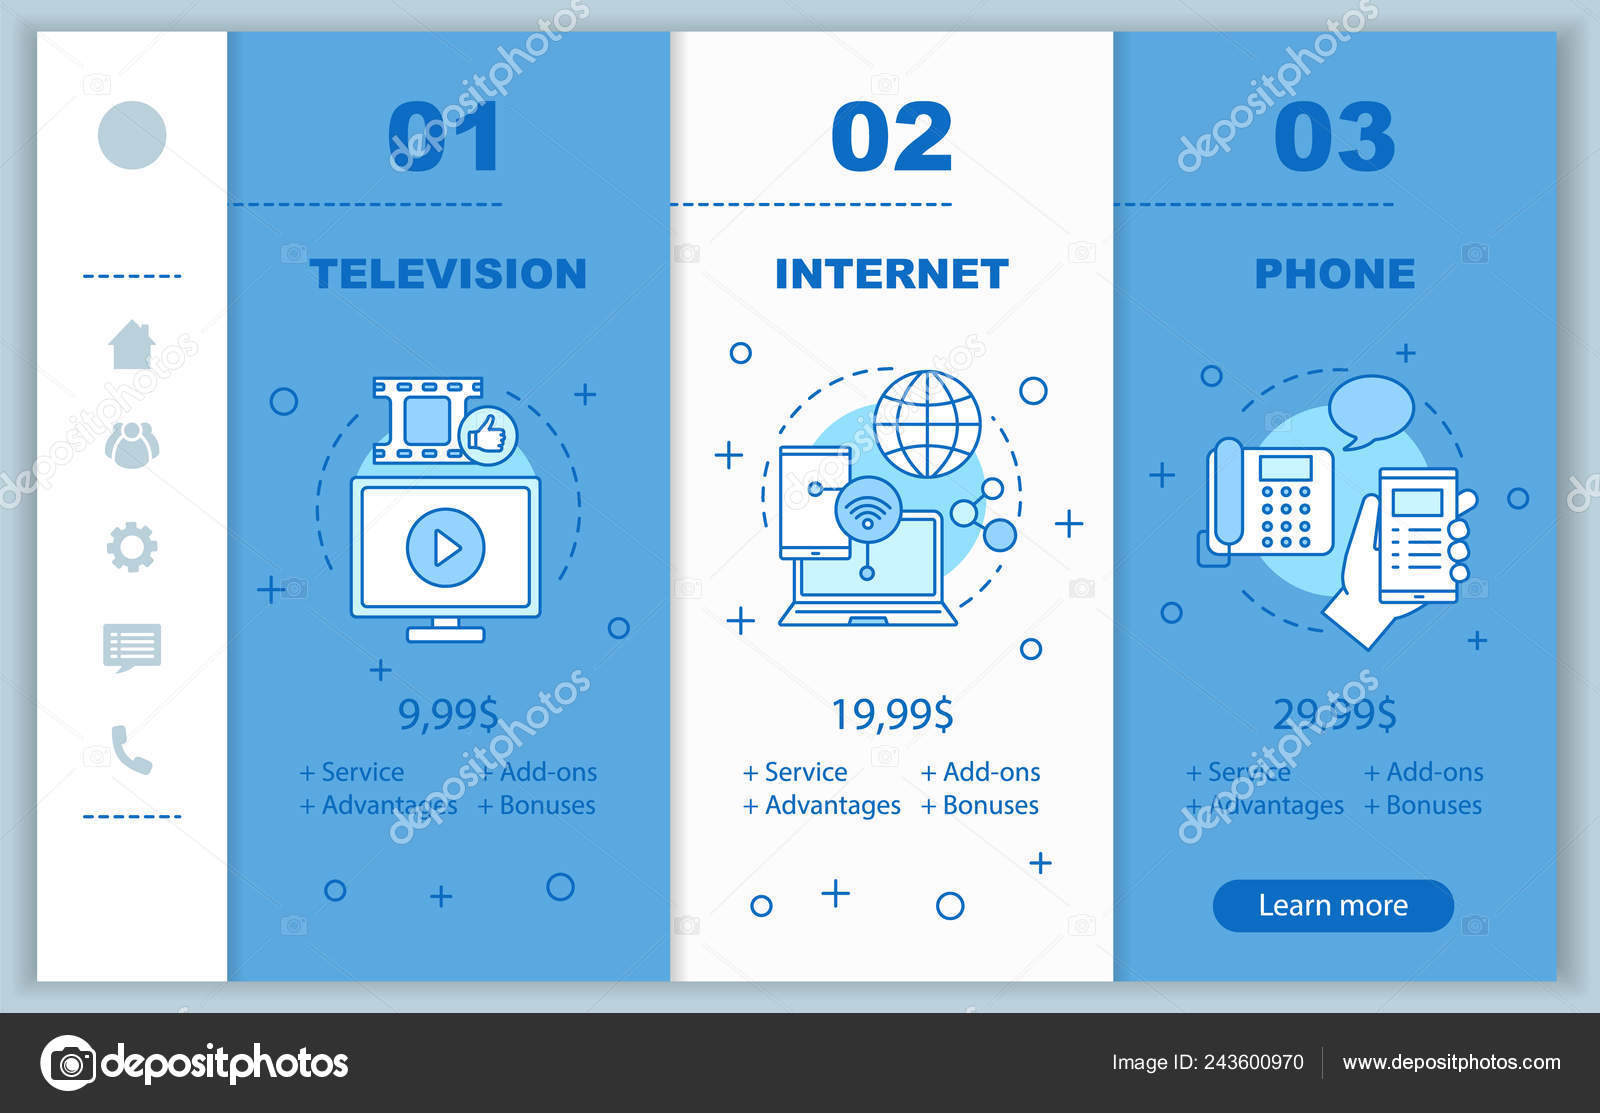 Internet And Cable Providers >> Cable Internet Phone Bundle Onboarding Mobile App Screens